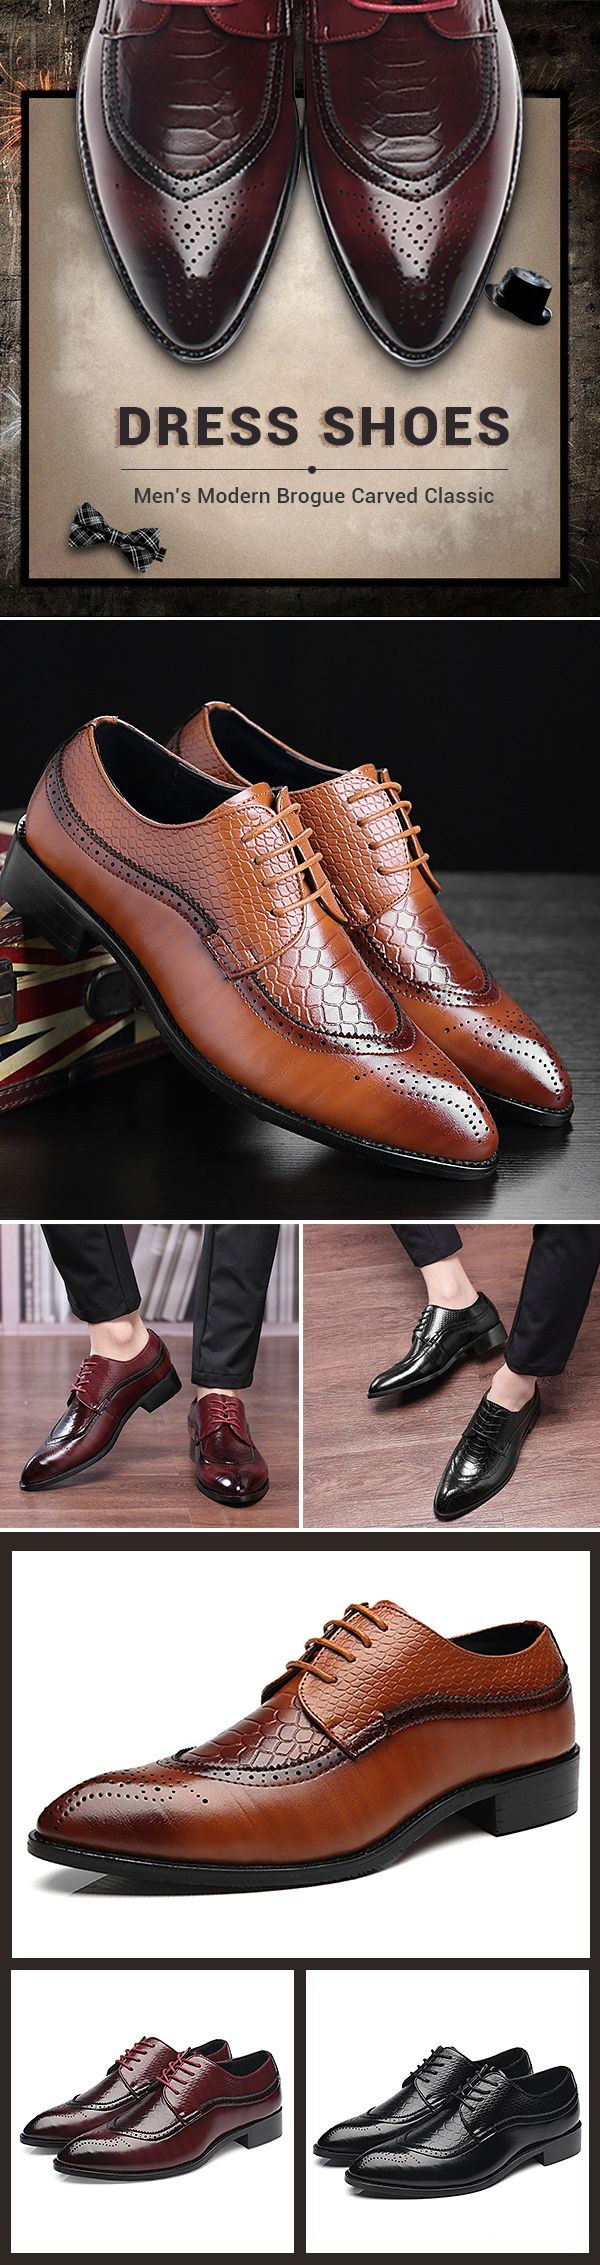 US$37.54 Large Size Men's Modern Brogue Carved Classic Pointed Toe Dress Shoes